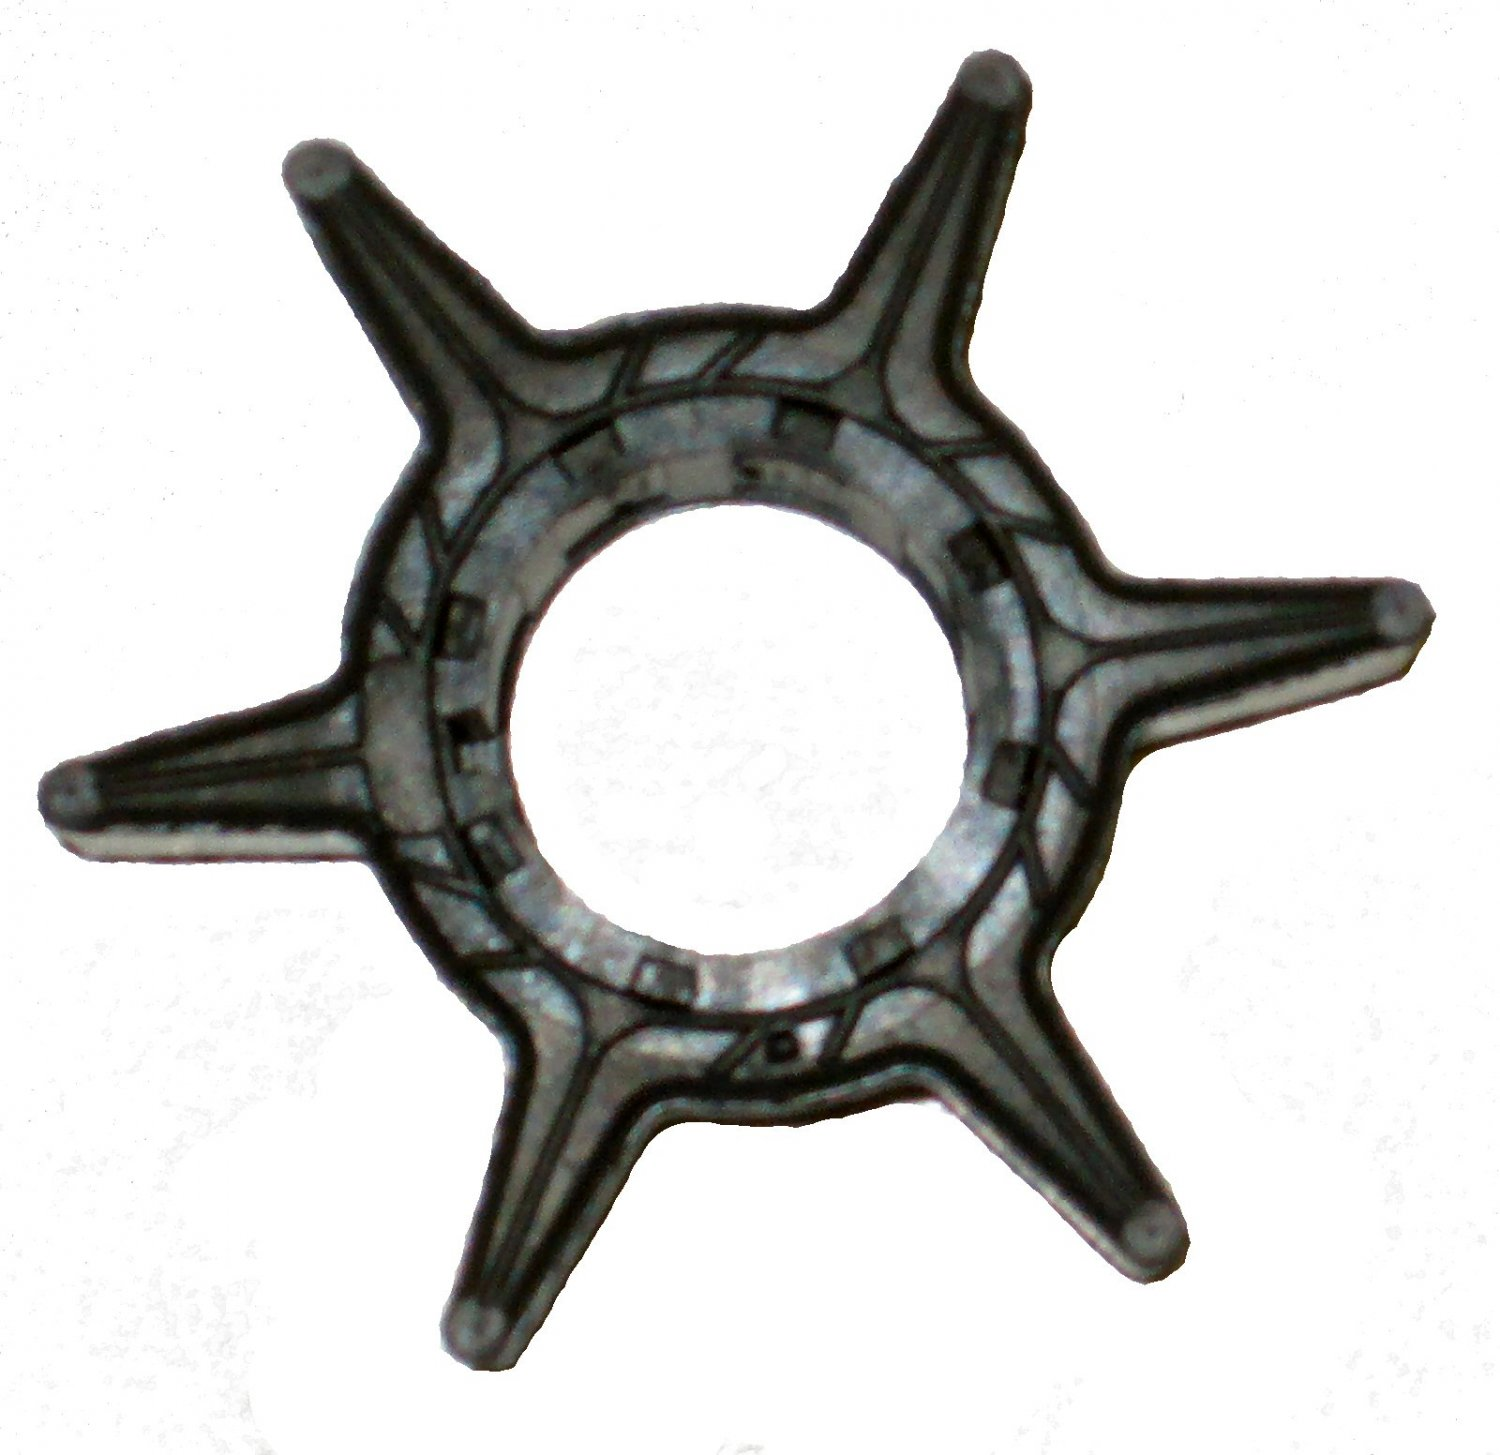 Impeller for Yamaha 40-70HP & Mariner 48-60HP replaces pn 6H3-44352-00-00 & 47-97108M (TM3069)